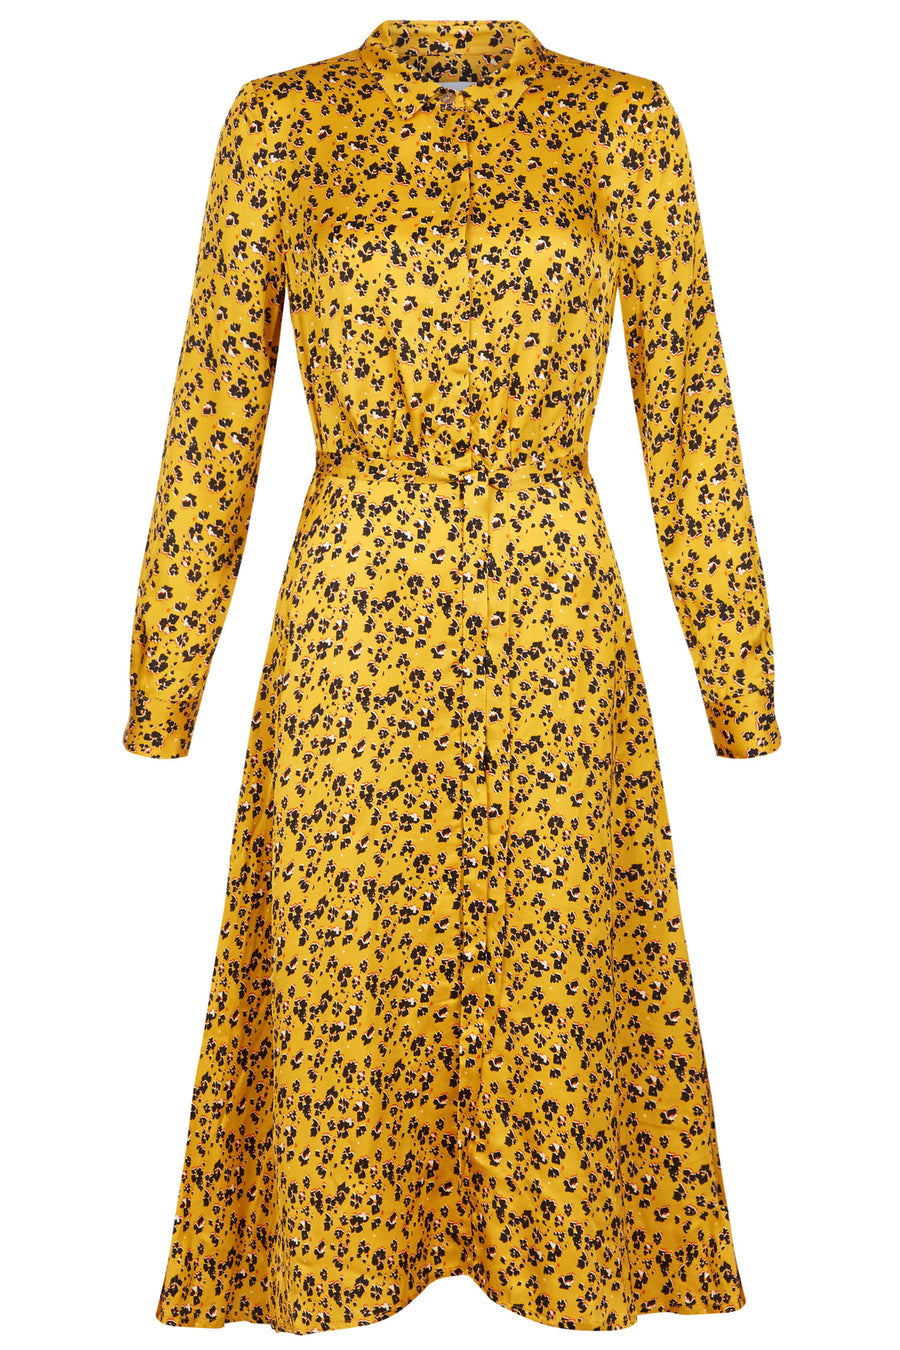 Exeter Golden Yellow Print Shirt Dress